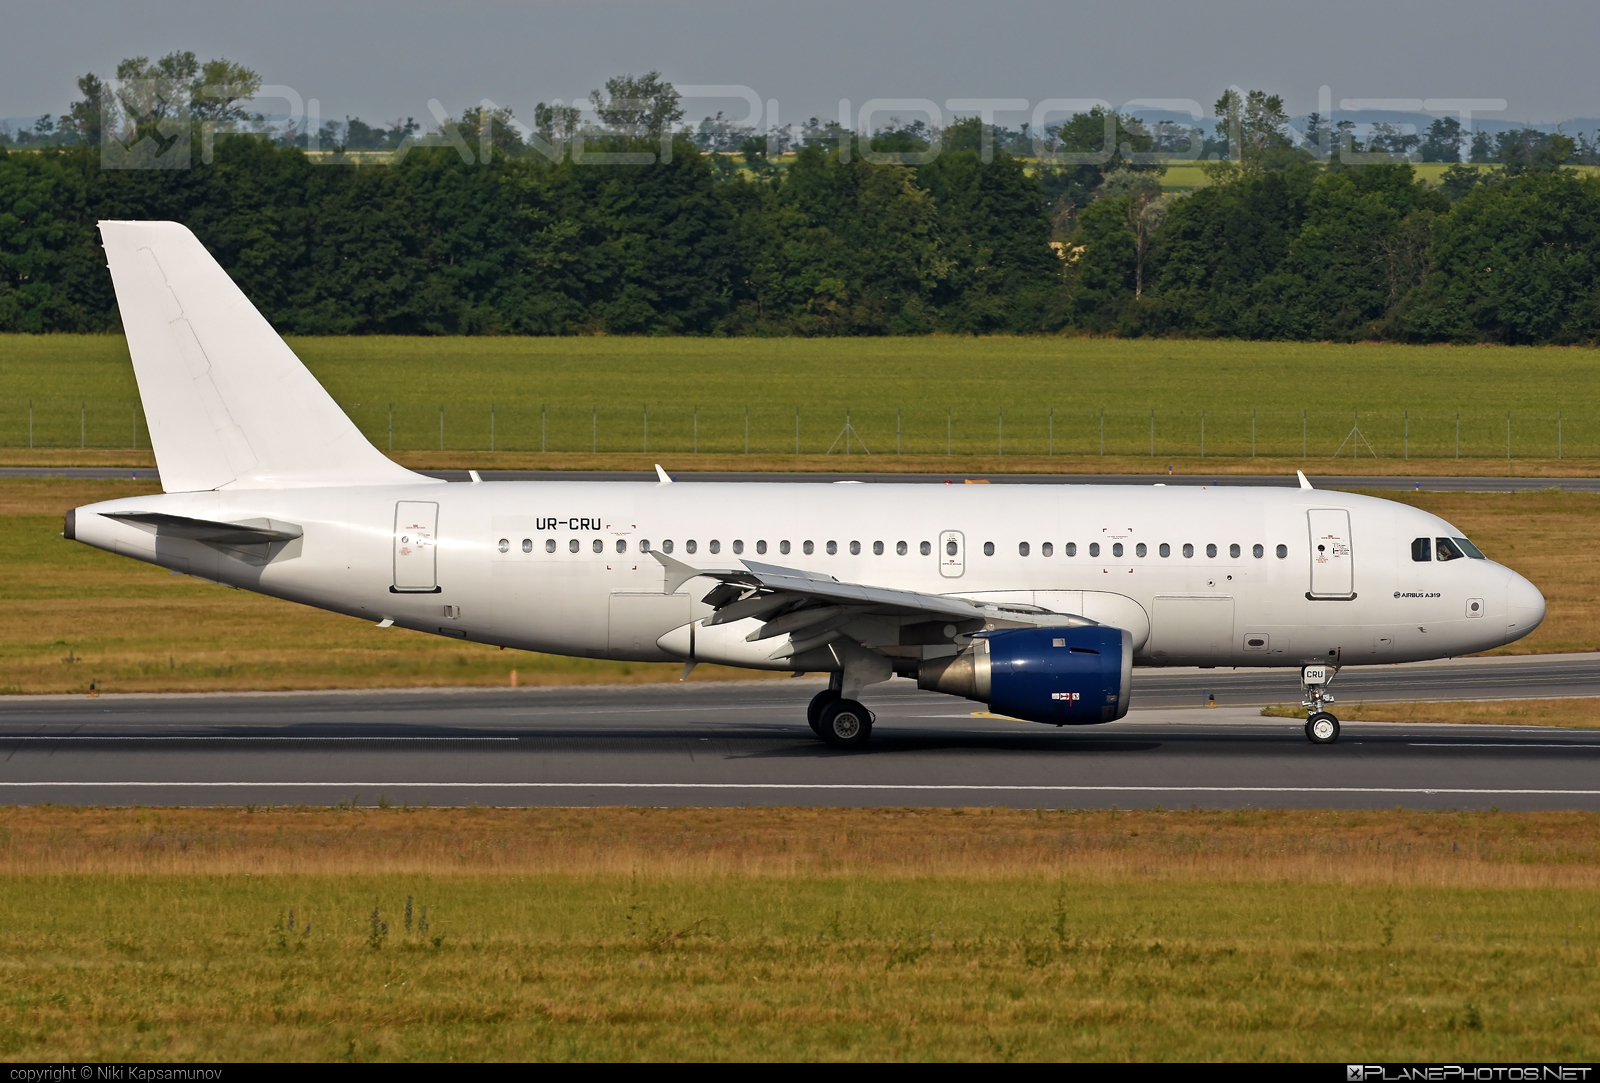 Airbus A319-114 - UR-CRU operated by Anda Air #a319 #a320family #airbus #airbus319